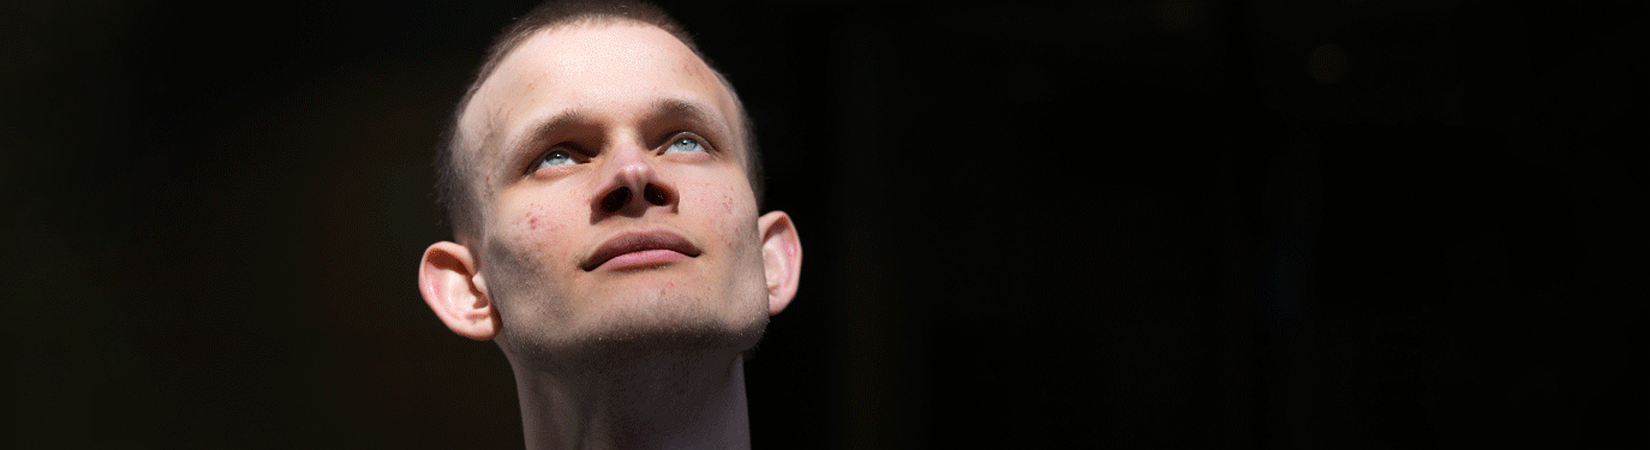 Dr  Vitalik Buterin – a University Dropout and a Math Genius